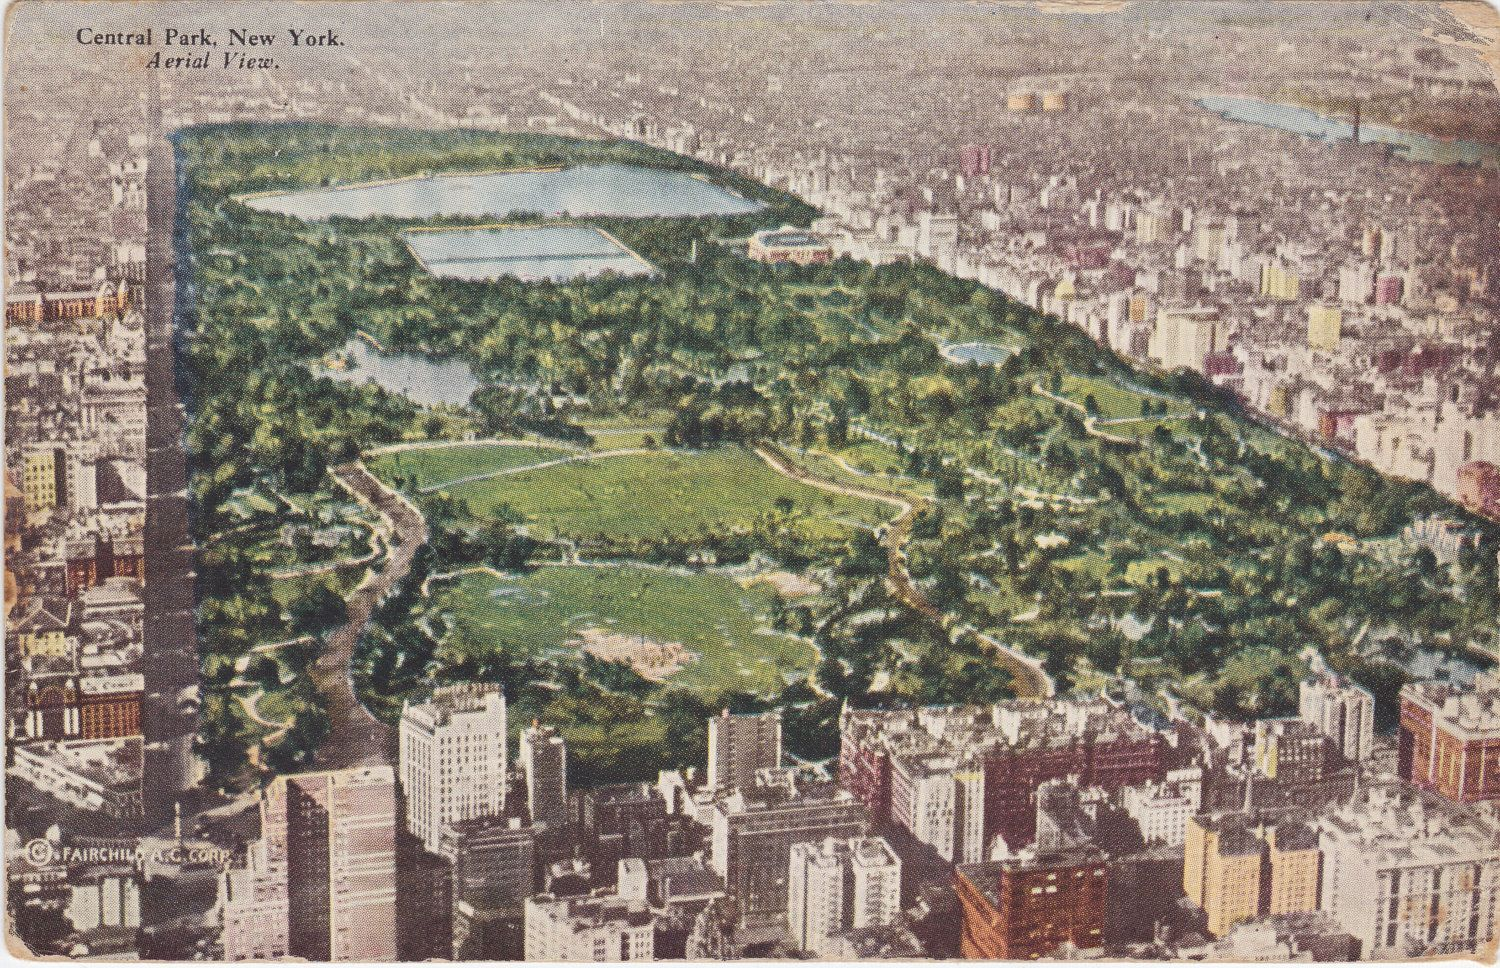 CENTRAL PARK, New York, Aerial View. 1940s Vintage